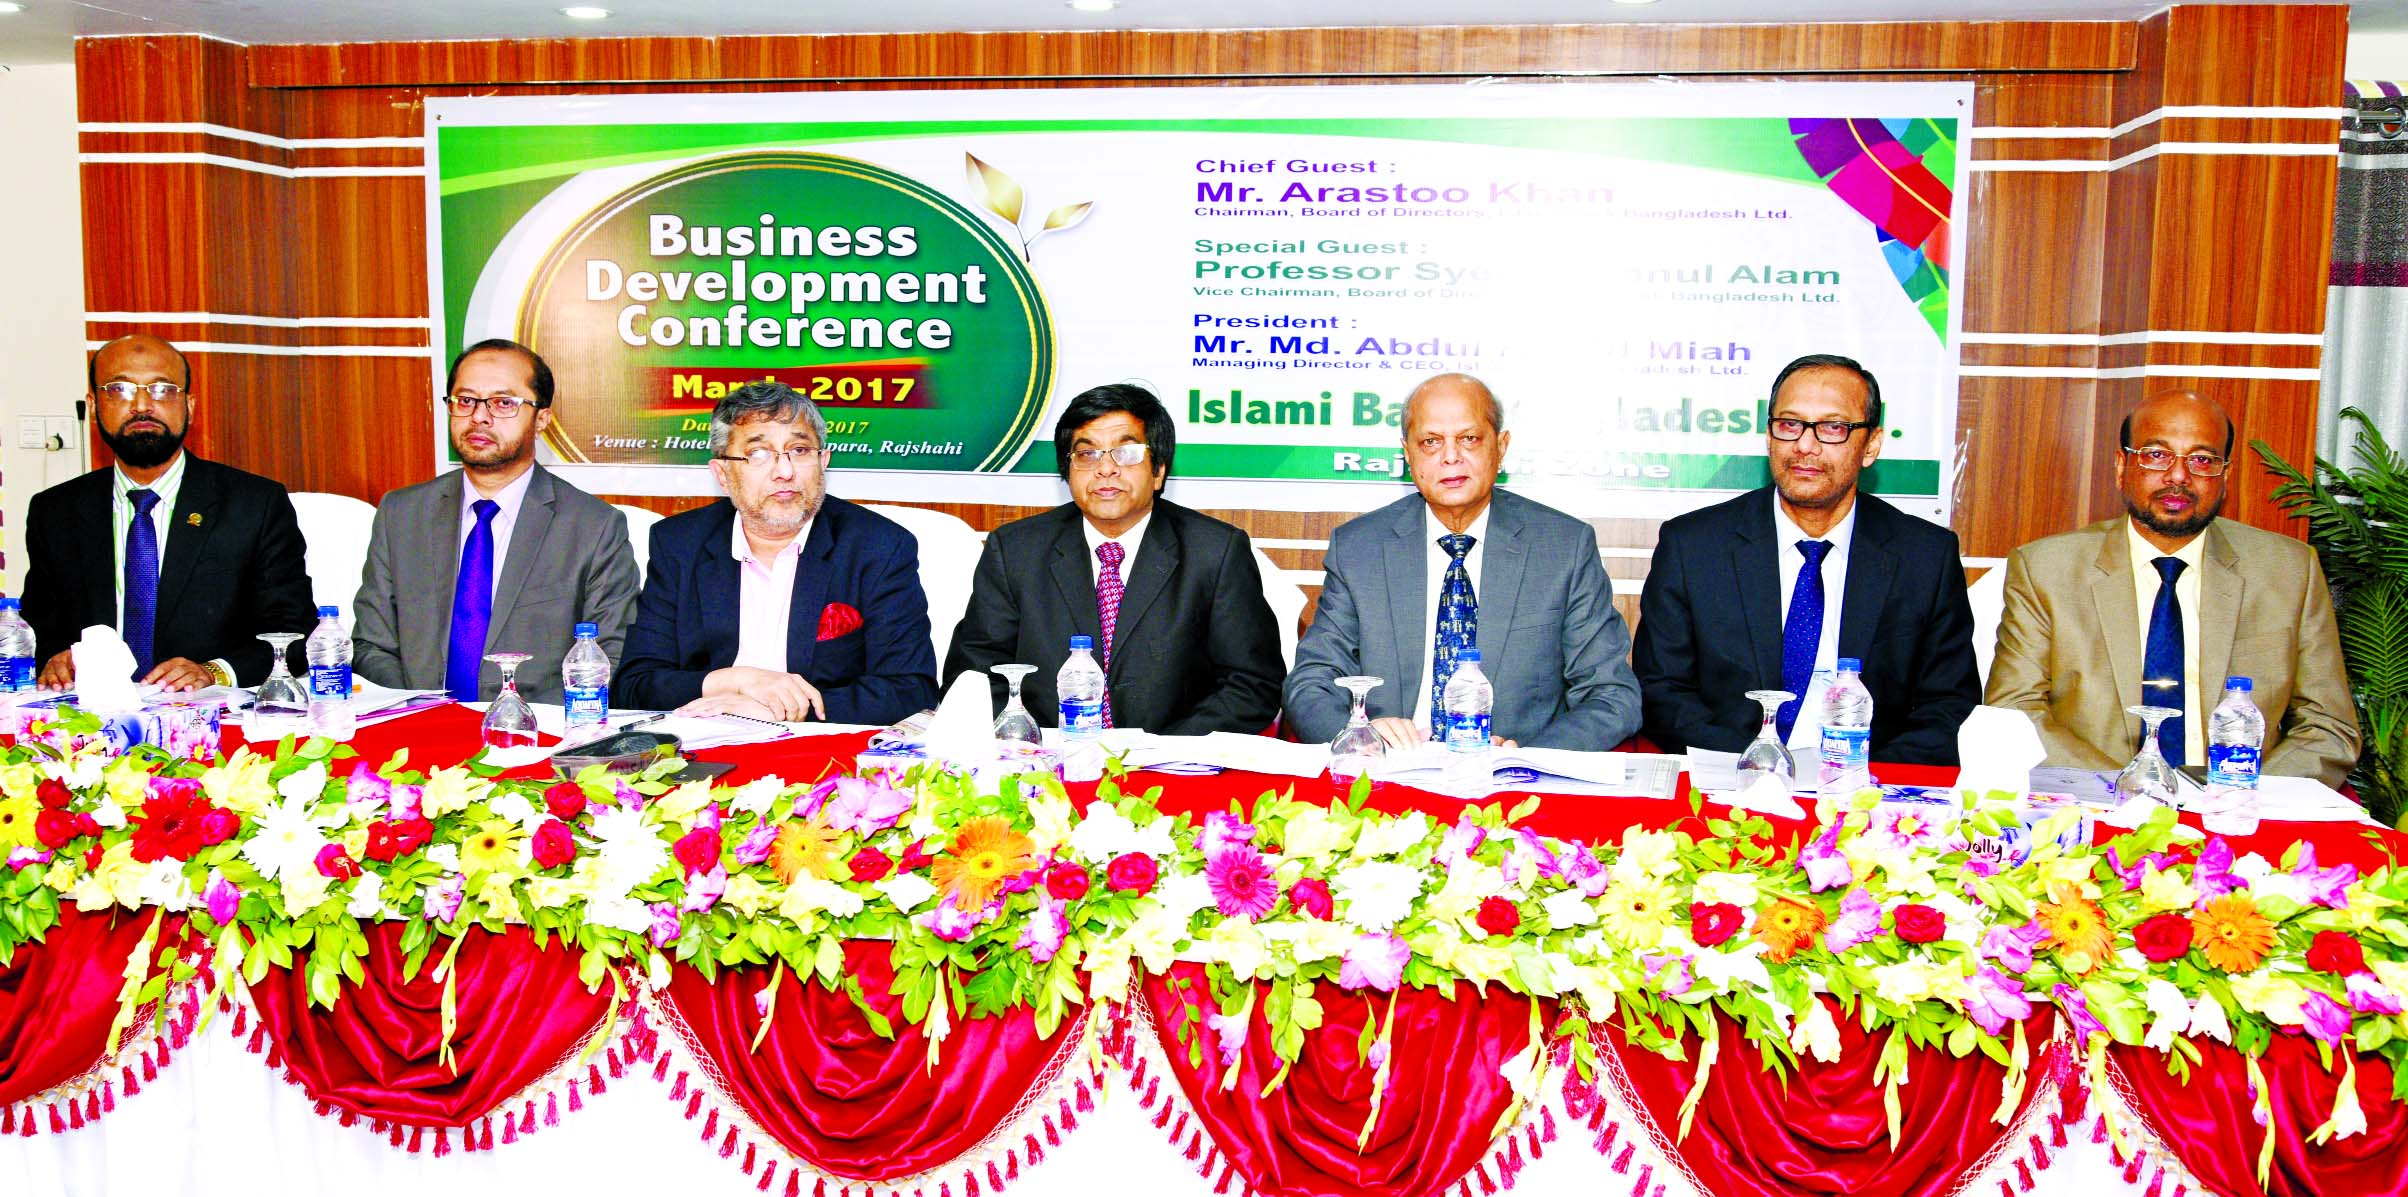 Arastoo Khan, Chairman, Board of Directors of Islami Bank Bangladesh Limited, presiding over its Quarterly Business Development Conference of Rajshahi Zone at a local hotel on Saturday. Professor Syed Ahsanul Alam, Vice Chairman, Md Abdul Hamid Miah, Managing Director, Md Mahbub-ul-Alam, Md Munirul Mawla, Abu Reza Md Yeahia, DMDs and selected officials of 19 branches under the zone of the bank were present.